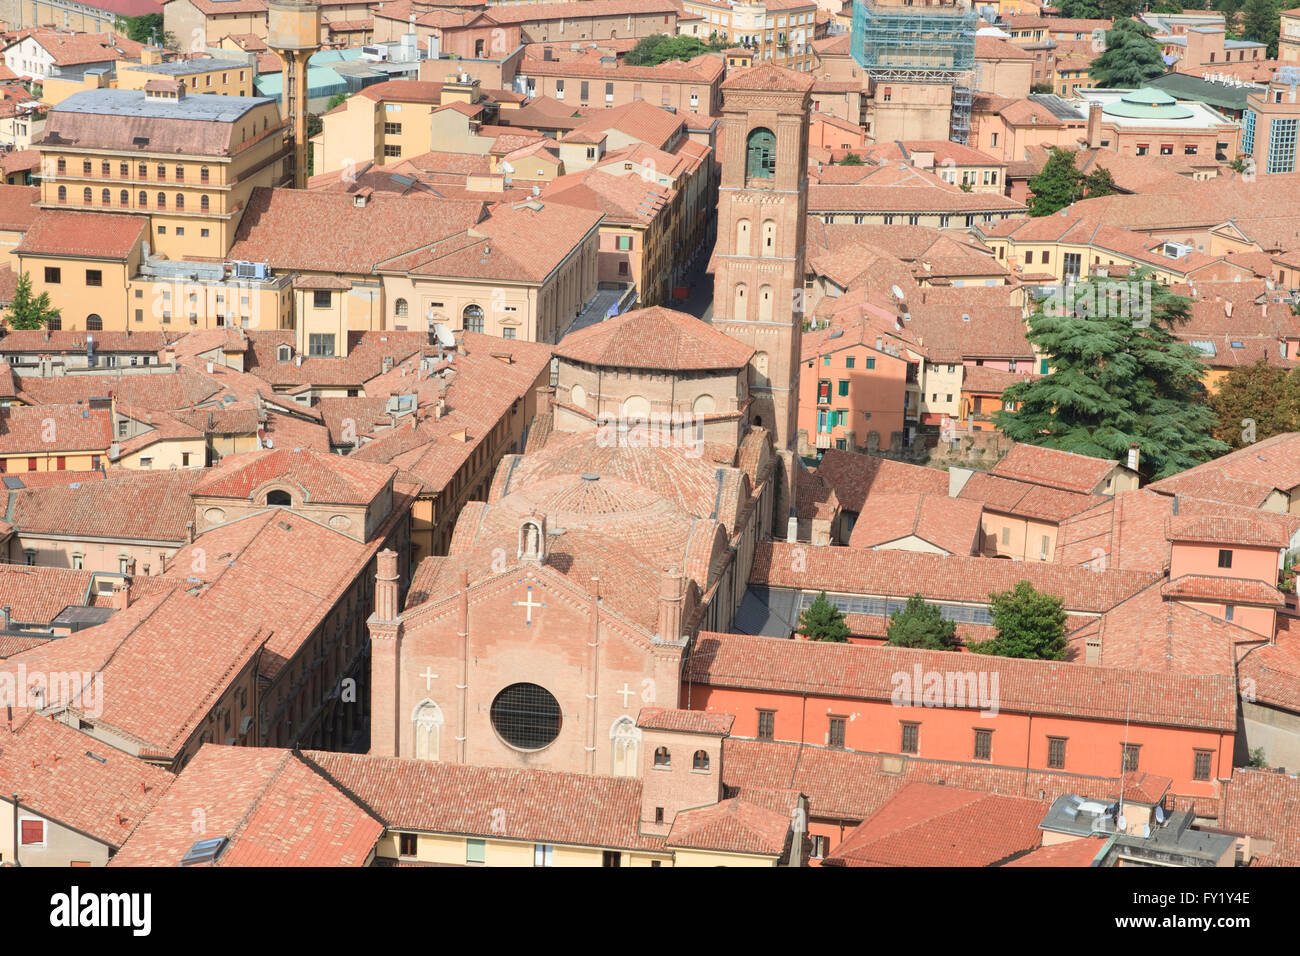 https://c8.alamy.com/comp/FY1Y4E/basilica-di-san-giacomo-maggiore-as-seen-from-asinelli-one-of-the-FY1Y4E.jpg